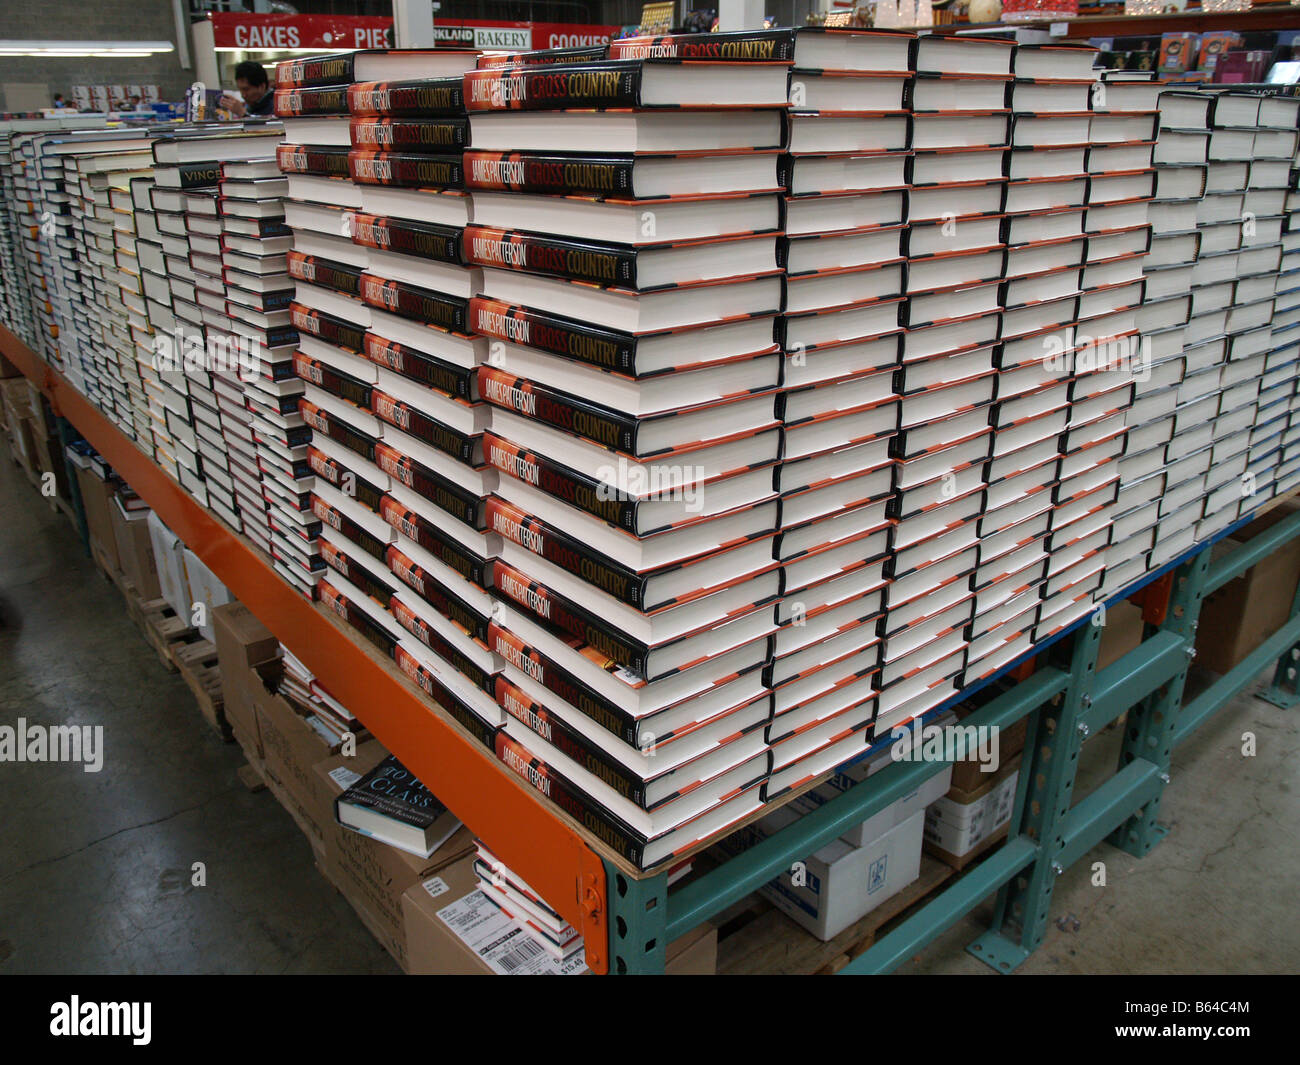 Stacks of books for sale in a Costco Wholesale big box store in the United States Stock Photo